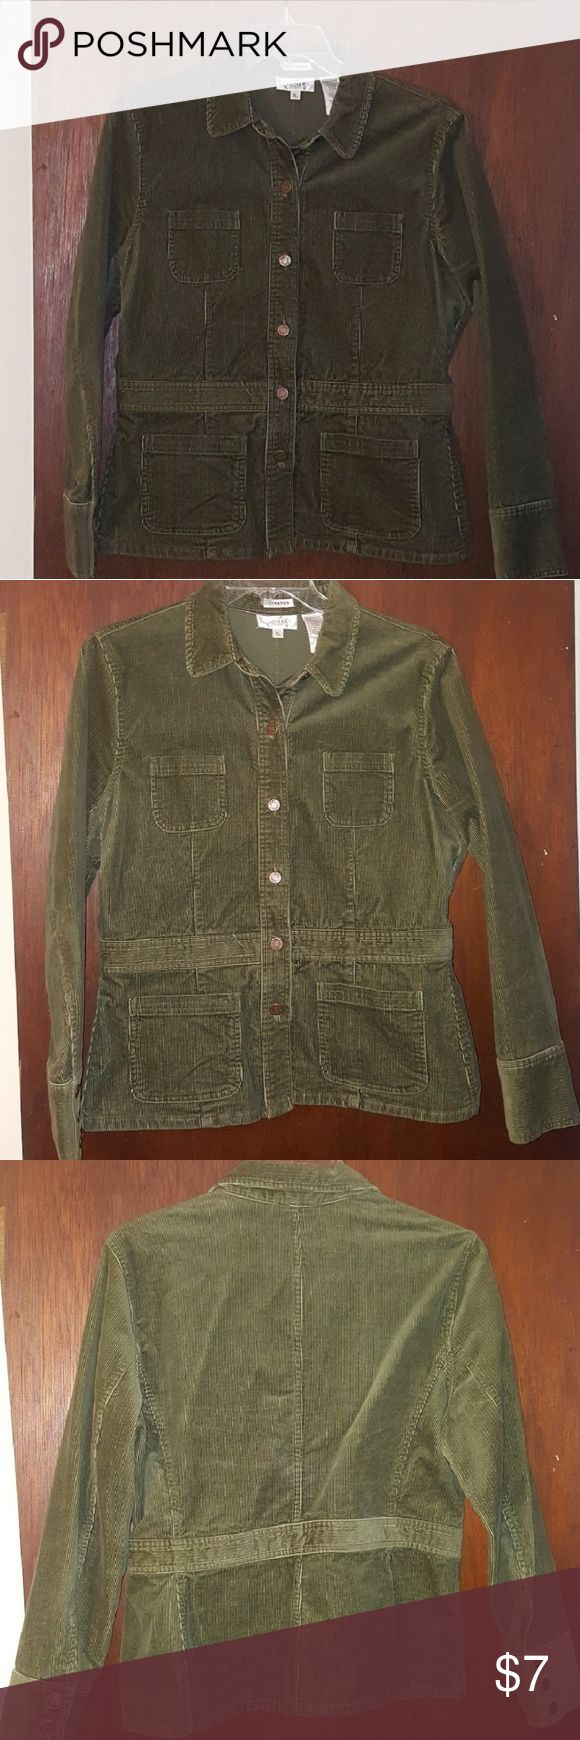 Green Cordoroy Jacket Jones Sport Stretch Cordory Jacket; great with jeans, khakis, really great for early fall! This jacket is not lined, so you may have room for a light sweater under it. It's very versatile and in  great condition! Jones Sport Jackets & Coats